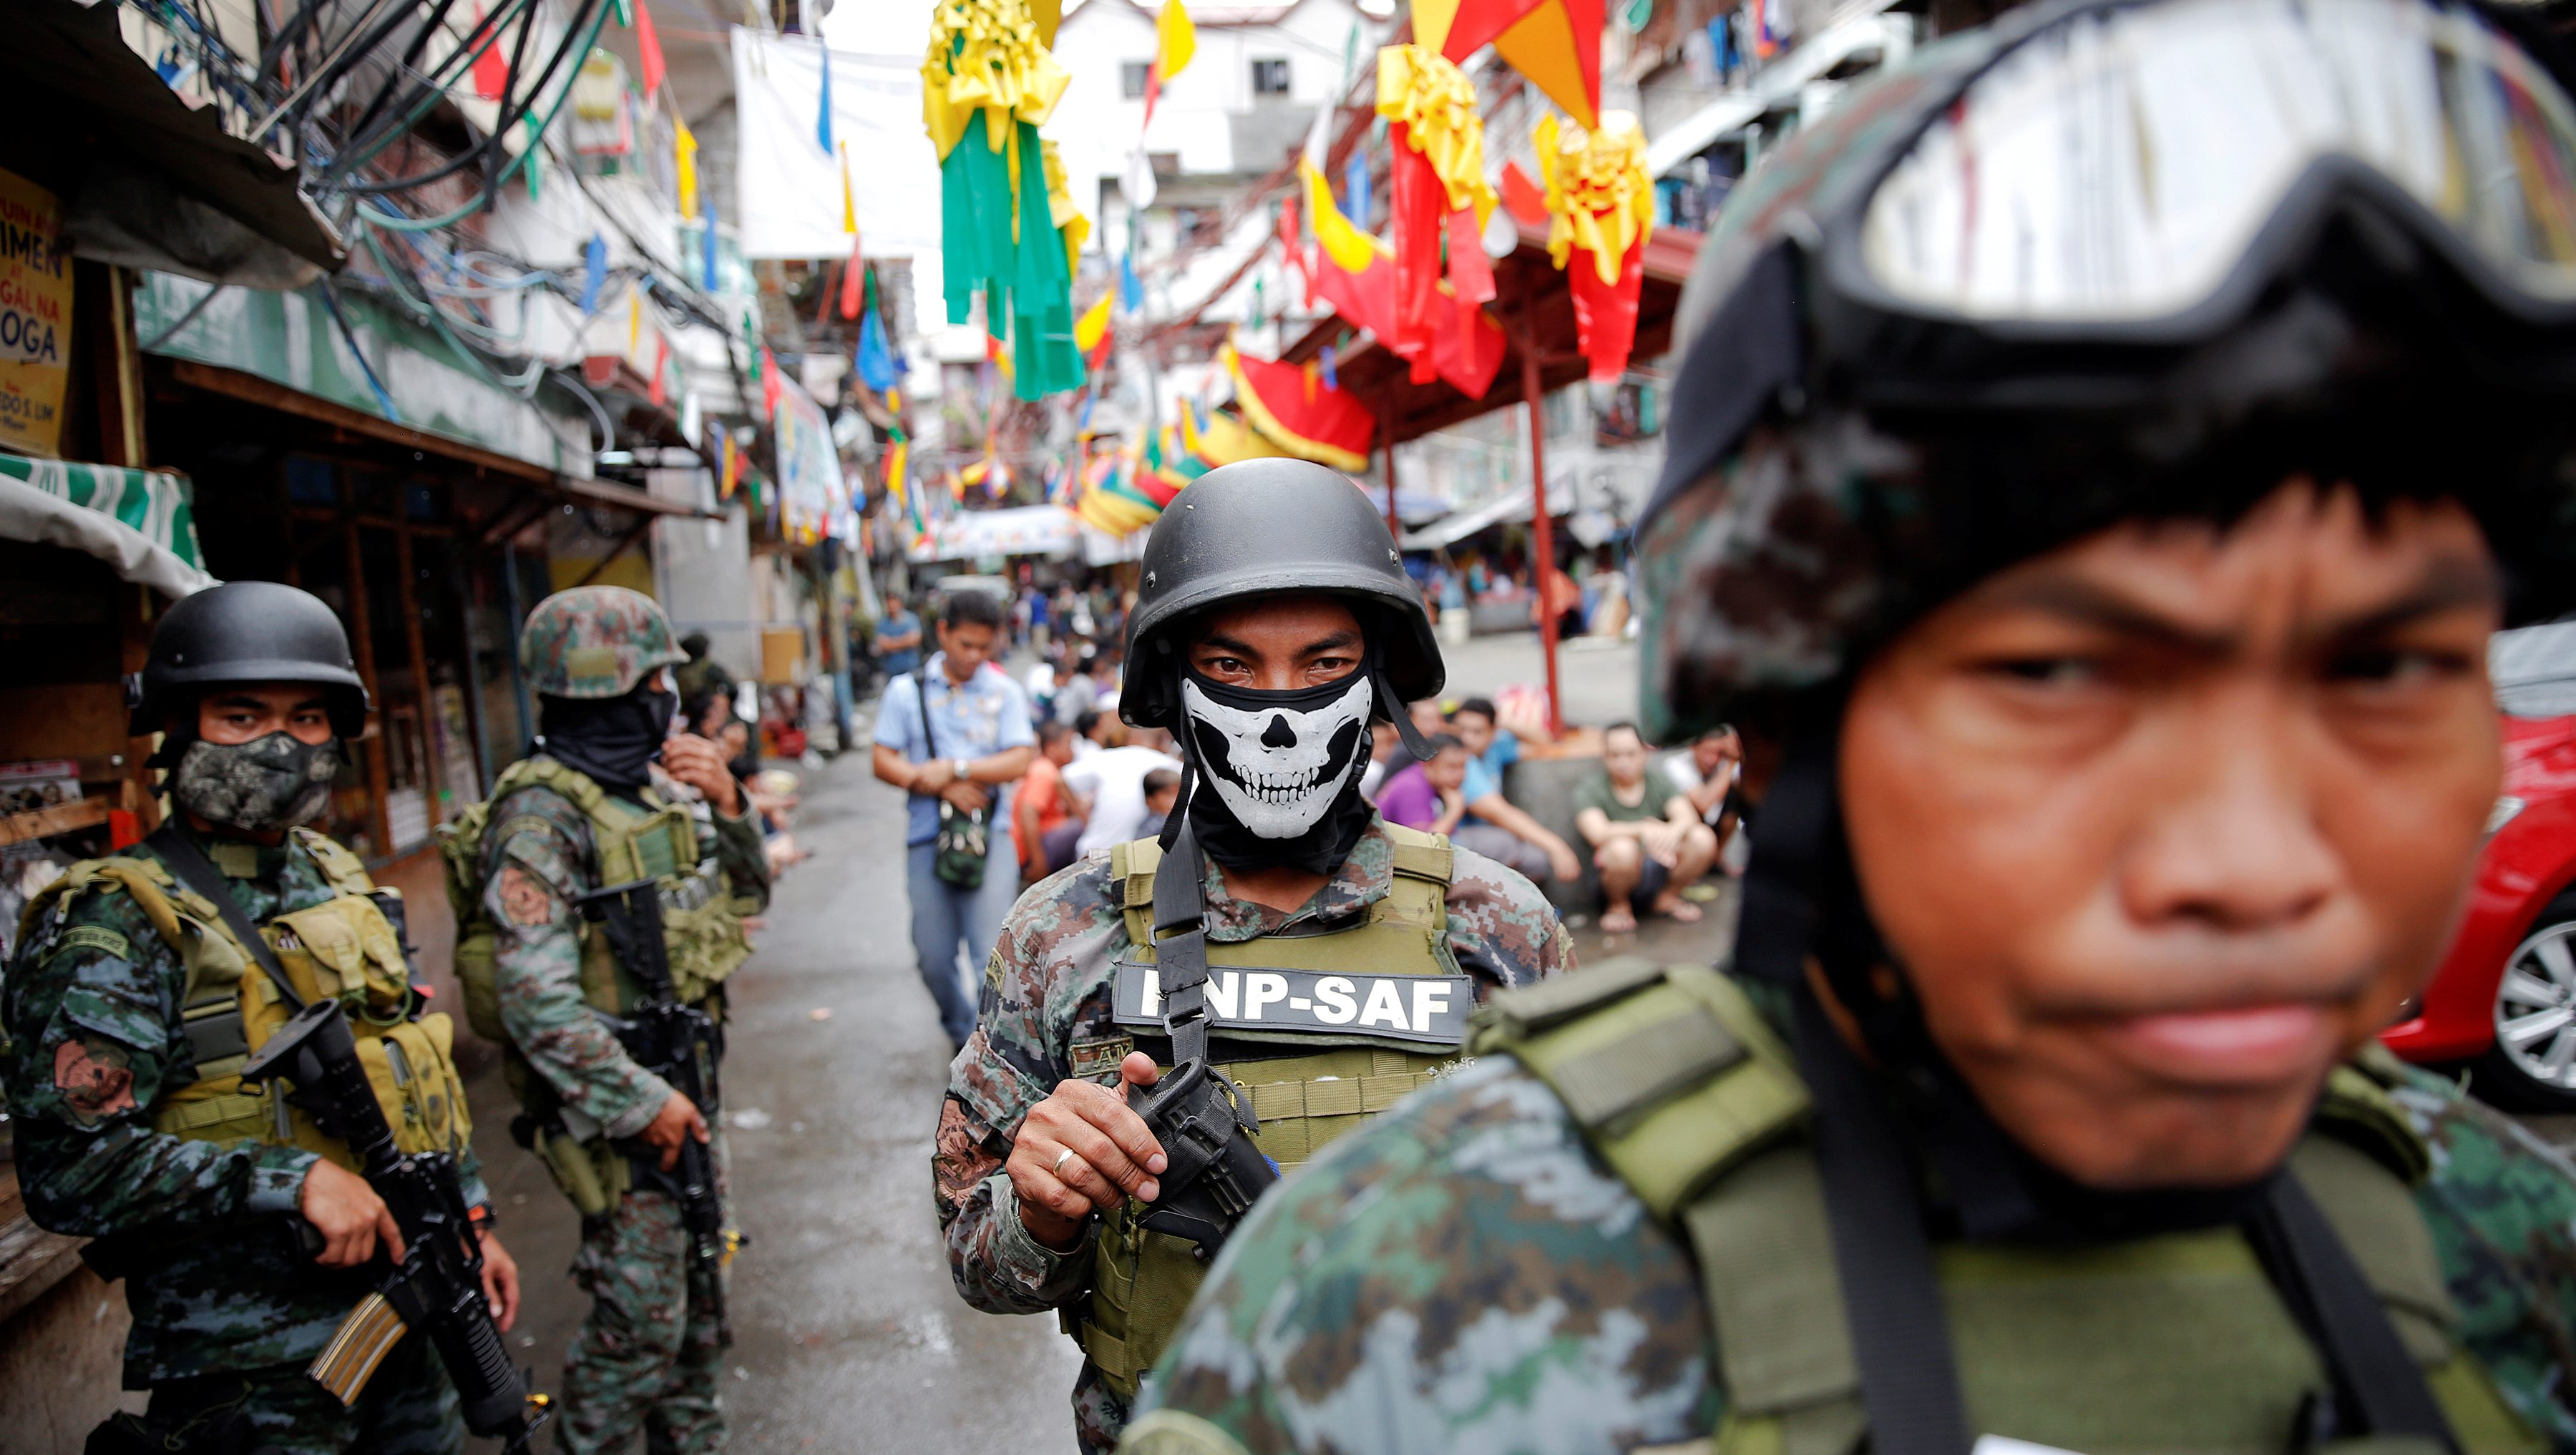 Armed security forces take a part in a drug raid, in Manila, Philippines